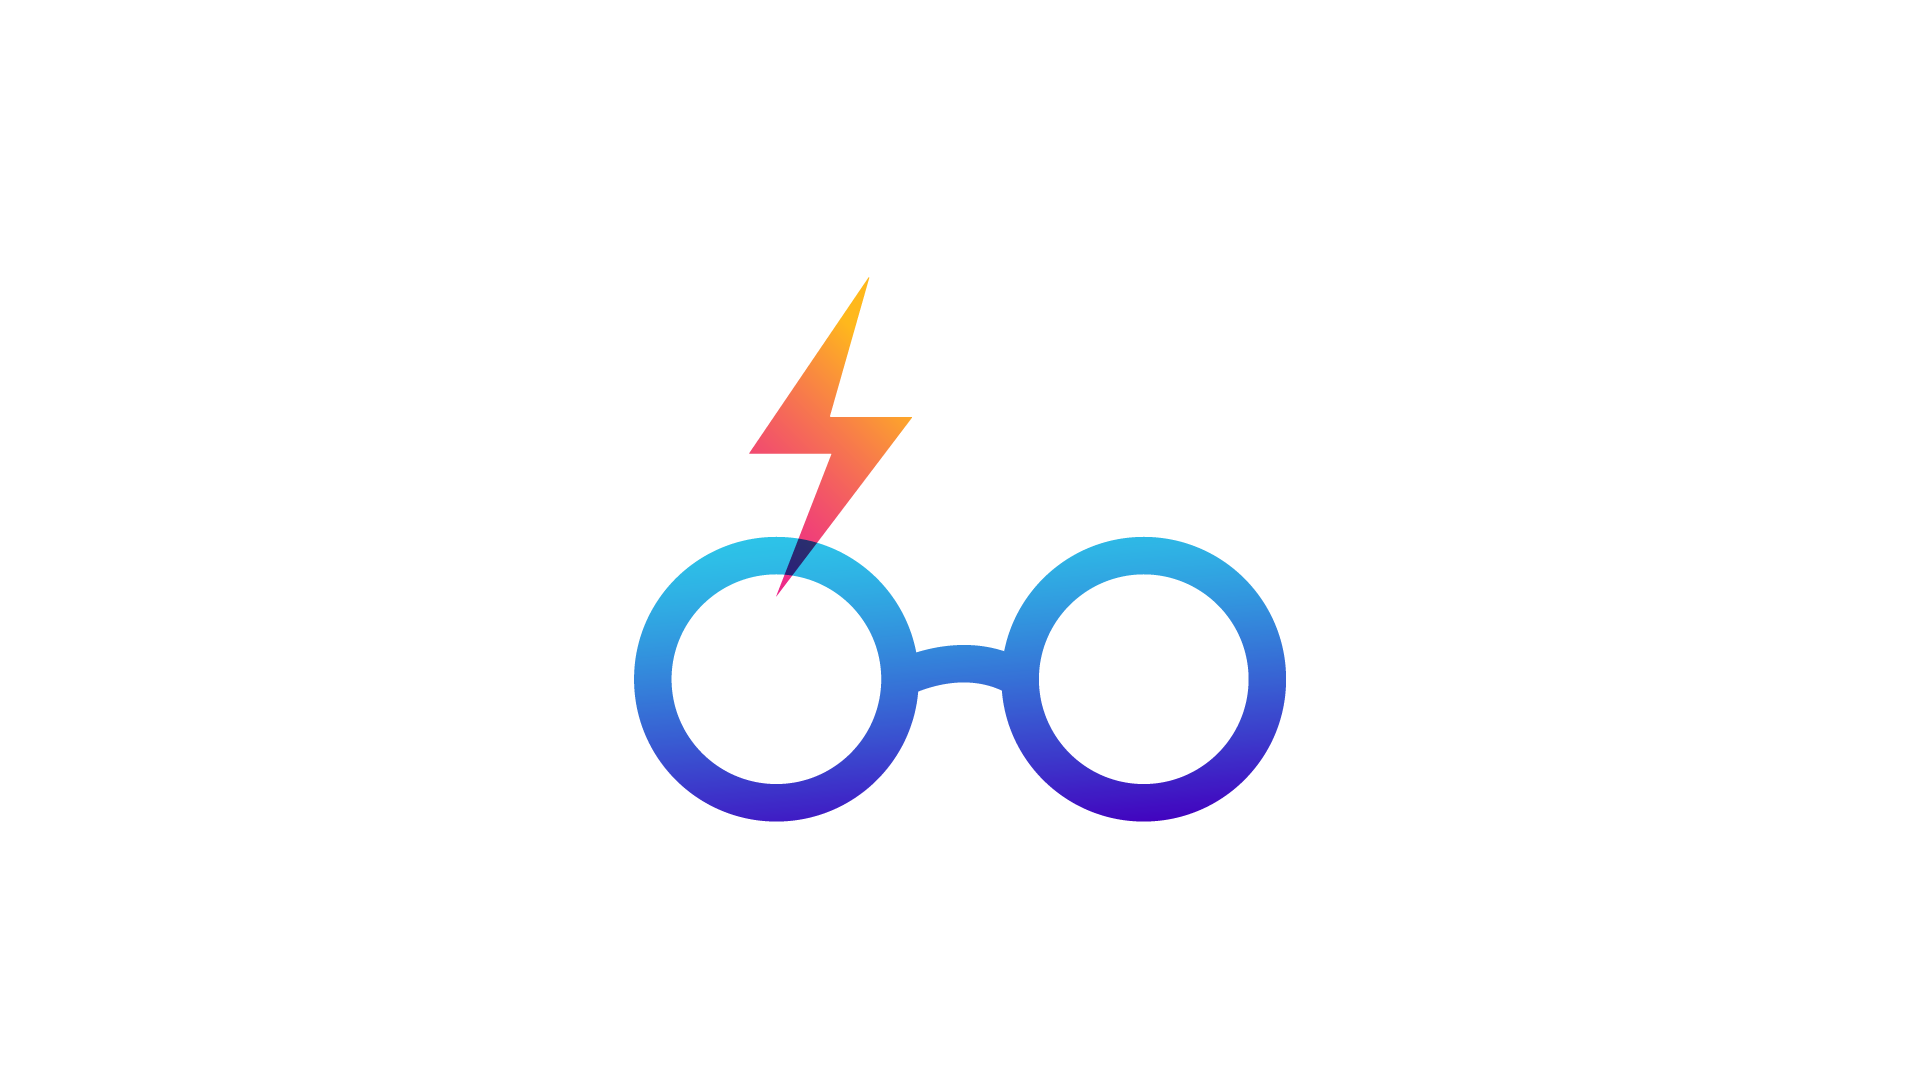 Harry Potter icon - glasses and scar